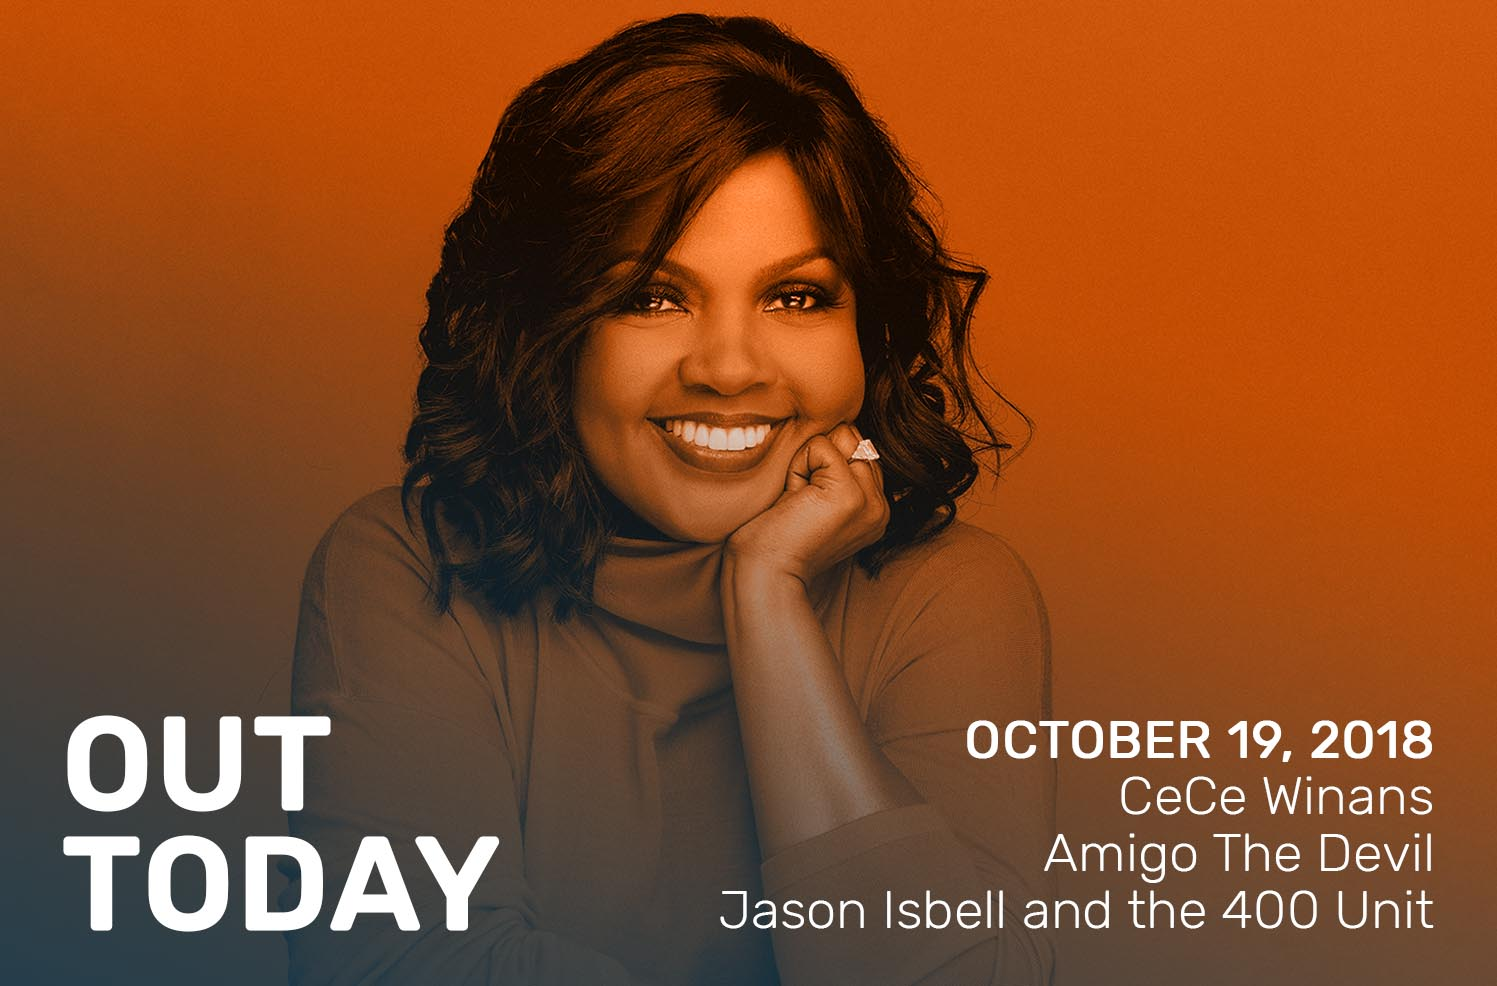 Out Today by The Orchard: CeCe Winans, Amigo The Devil & More